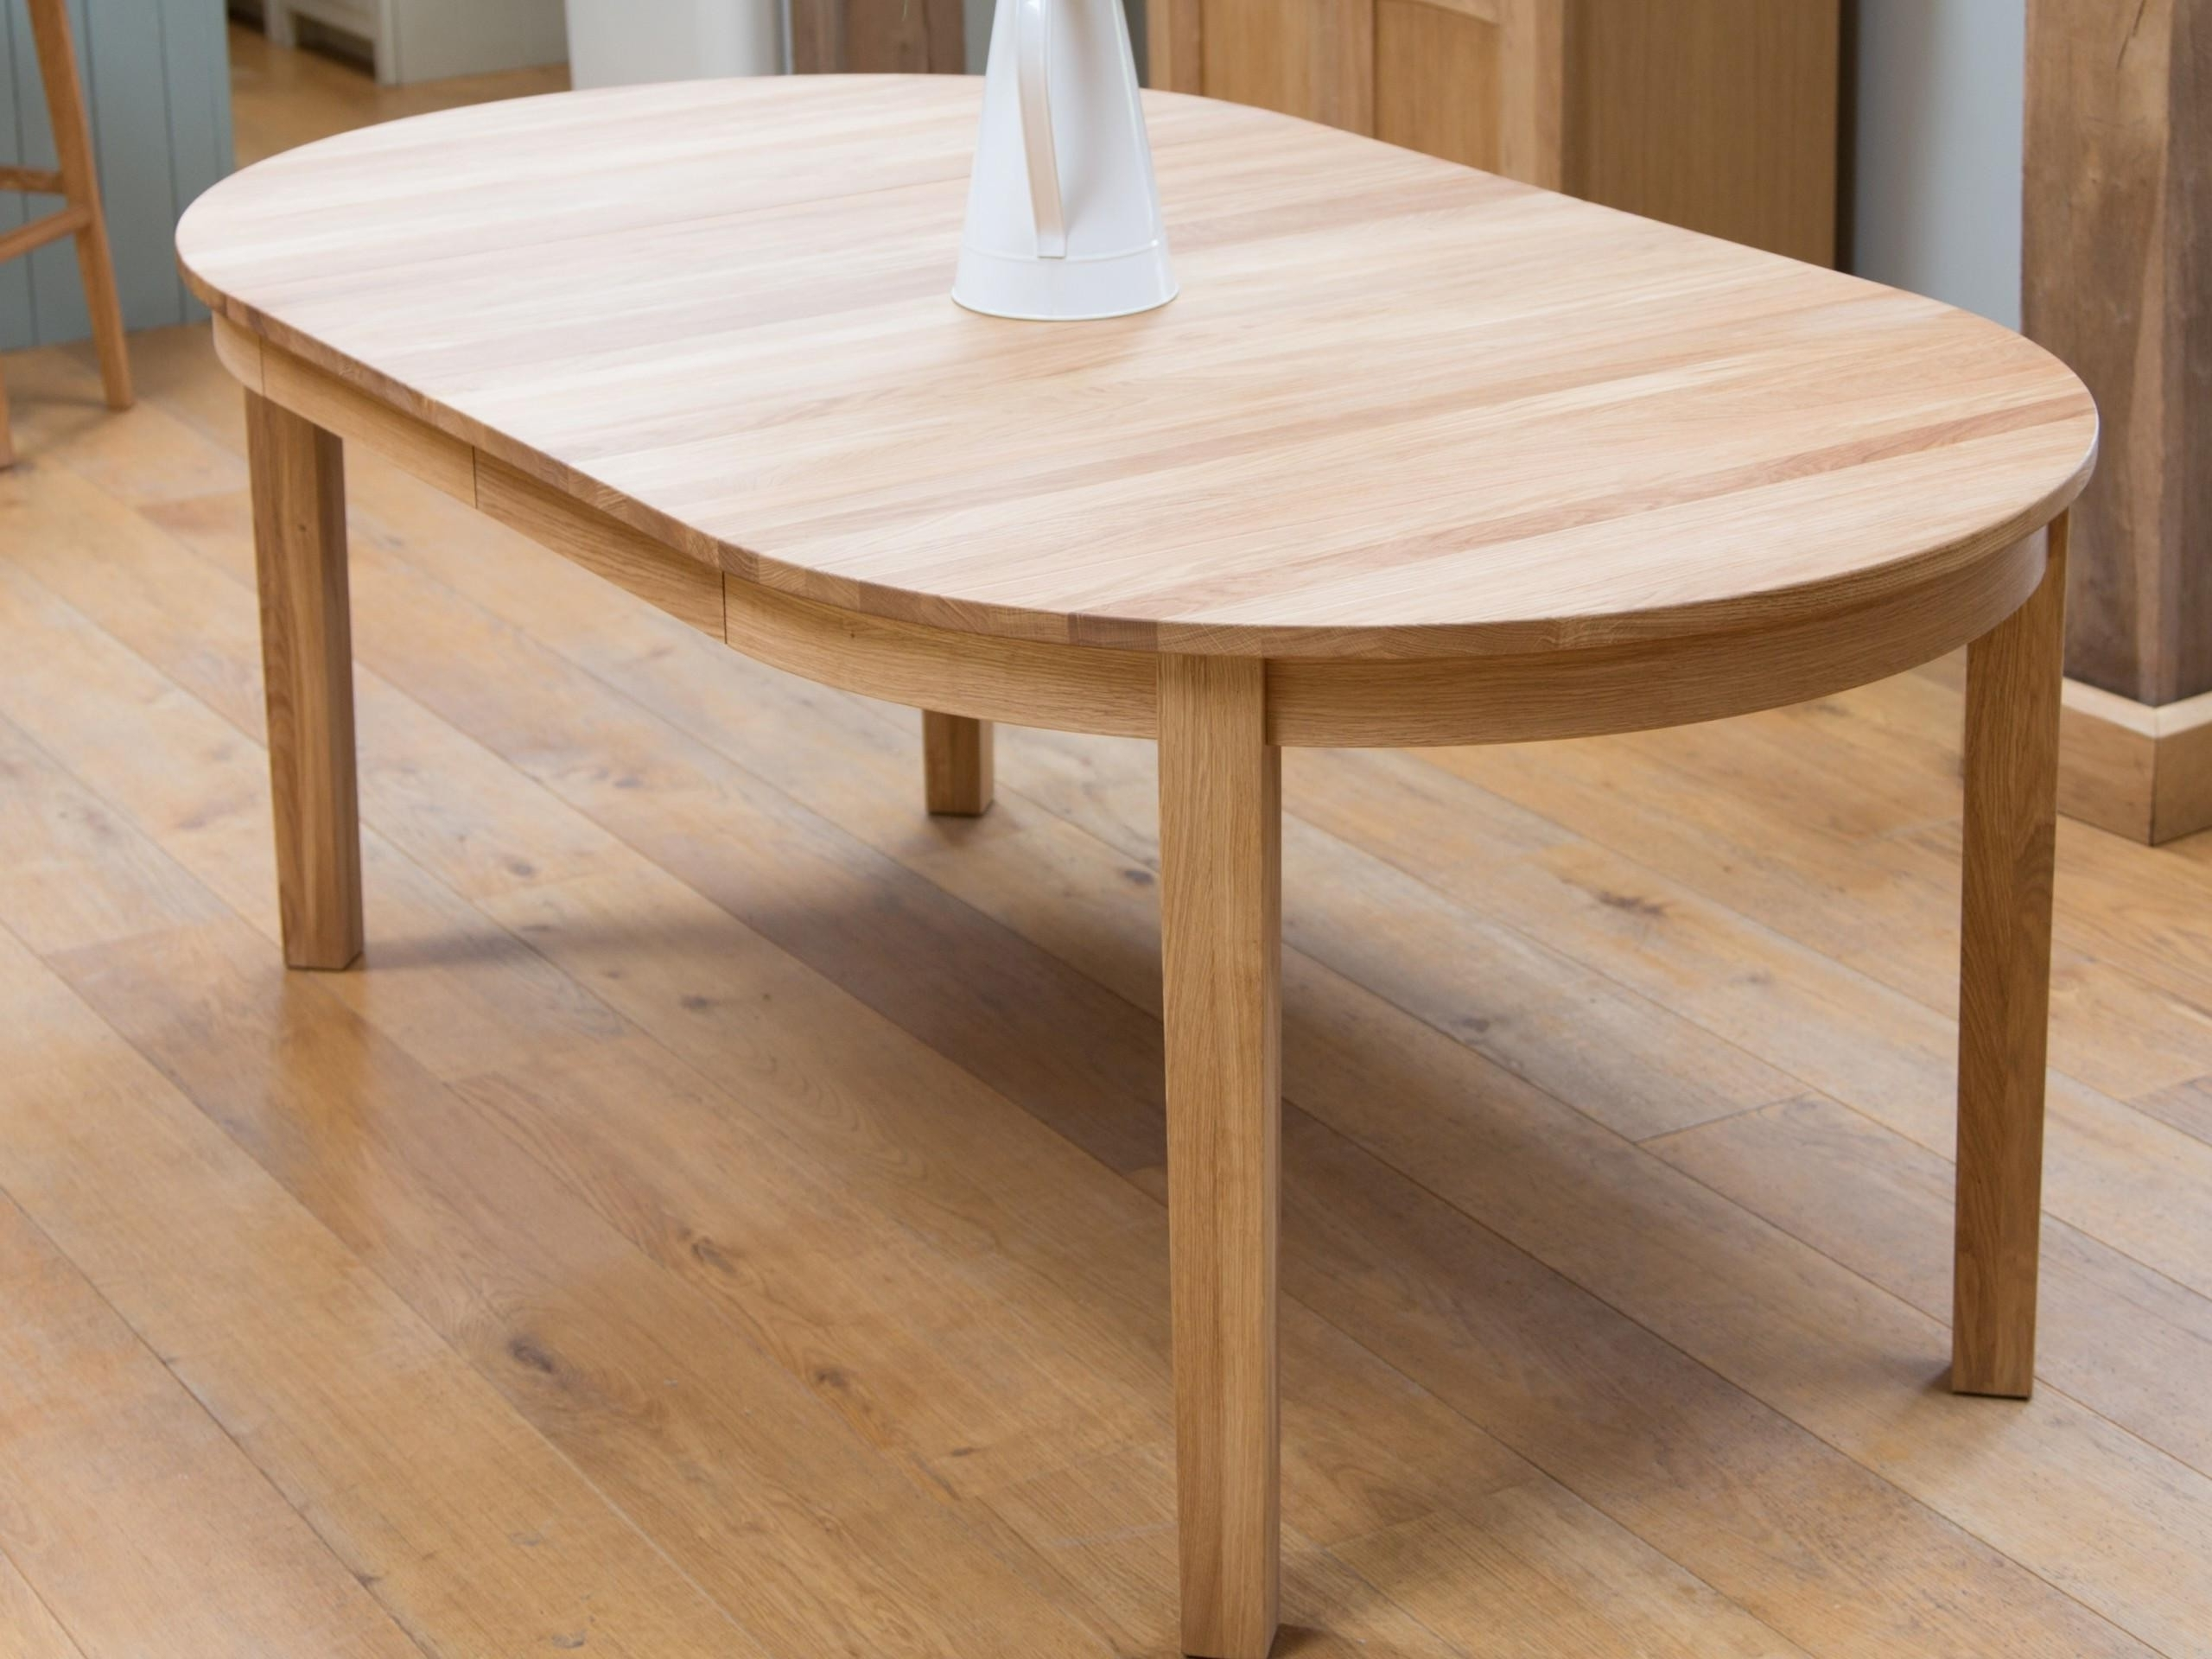 2018 White Square Extending Dining Tables Regarding Extendable Dining Tables For Small Spaces Best Of 79 Elegant Stocks (View 19 of 25)